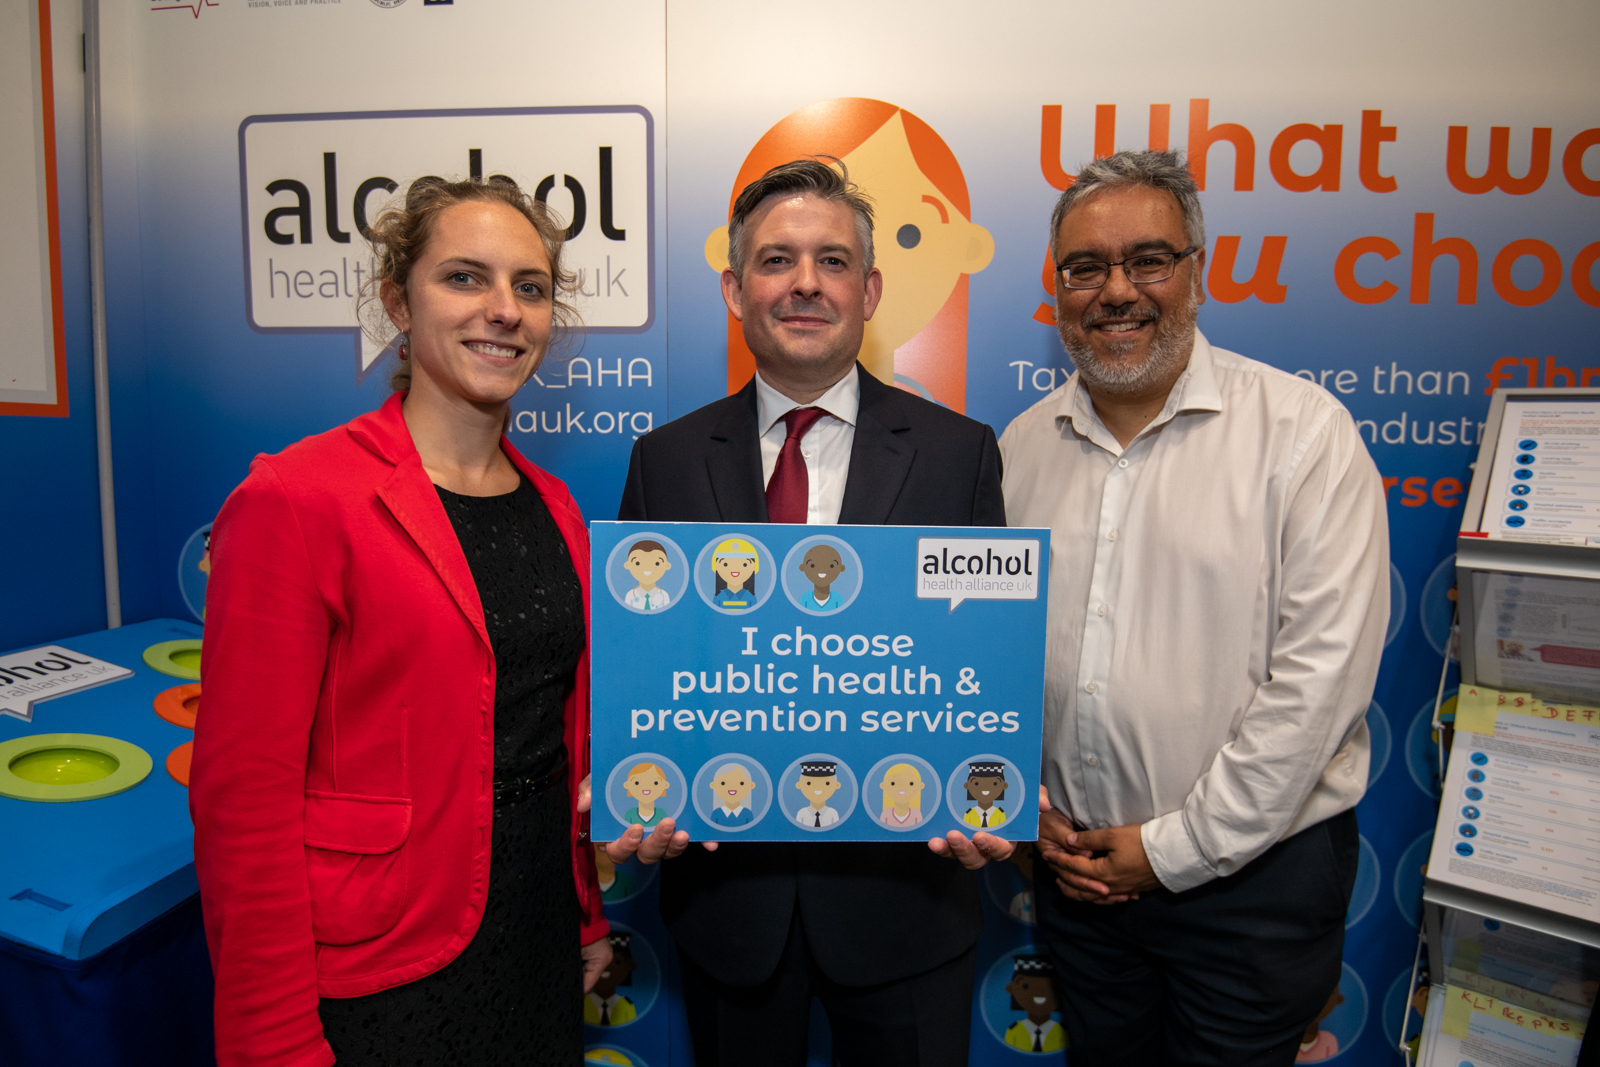 Jon visiting the Alcohol Health Alliance stand at the Labour Party Conference and discussing ways to tackle alcohol harm - Wednesday September 25 2019